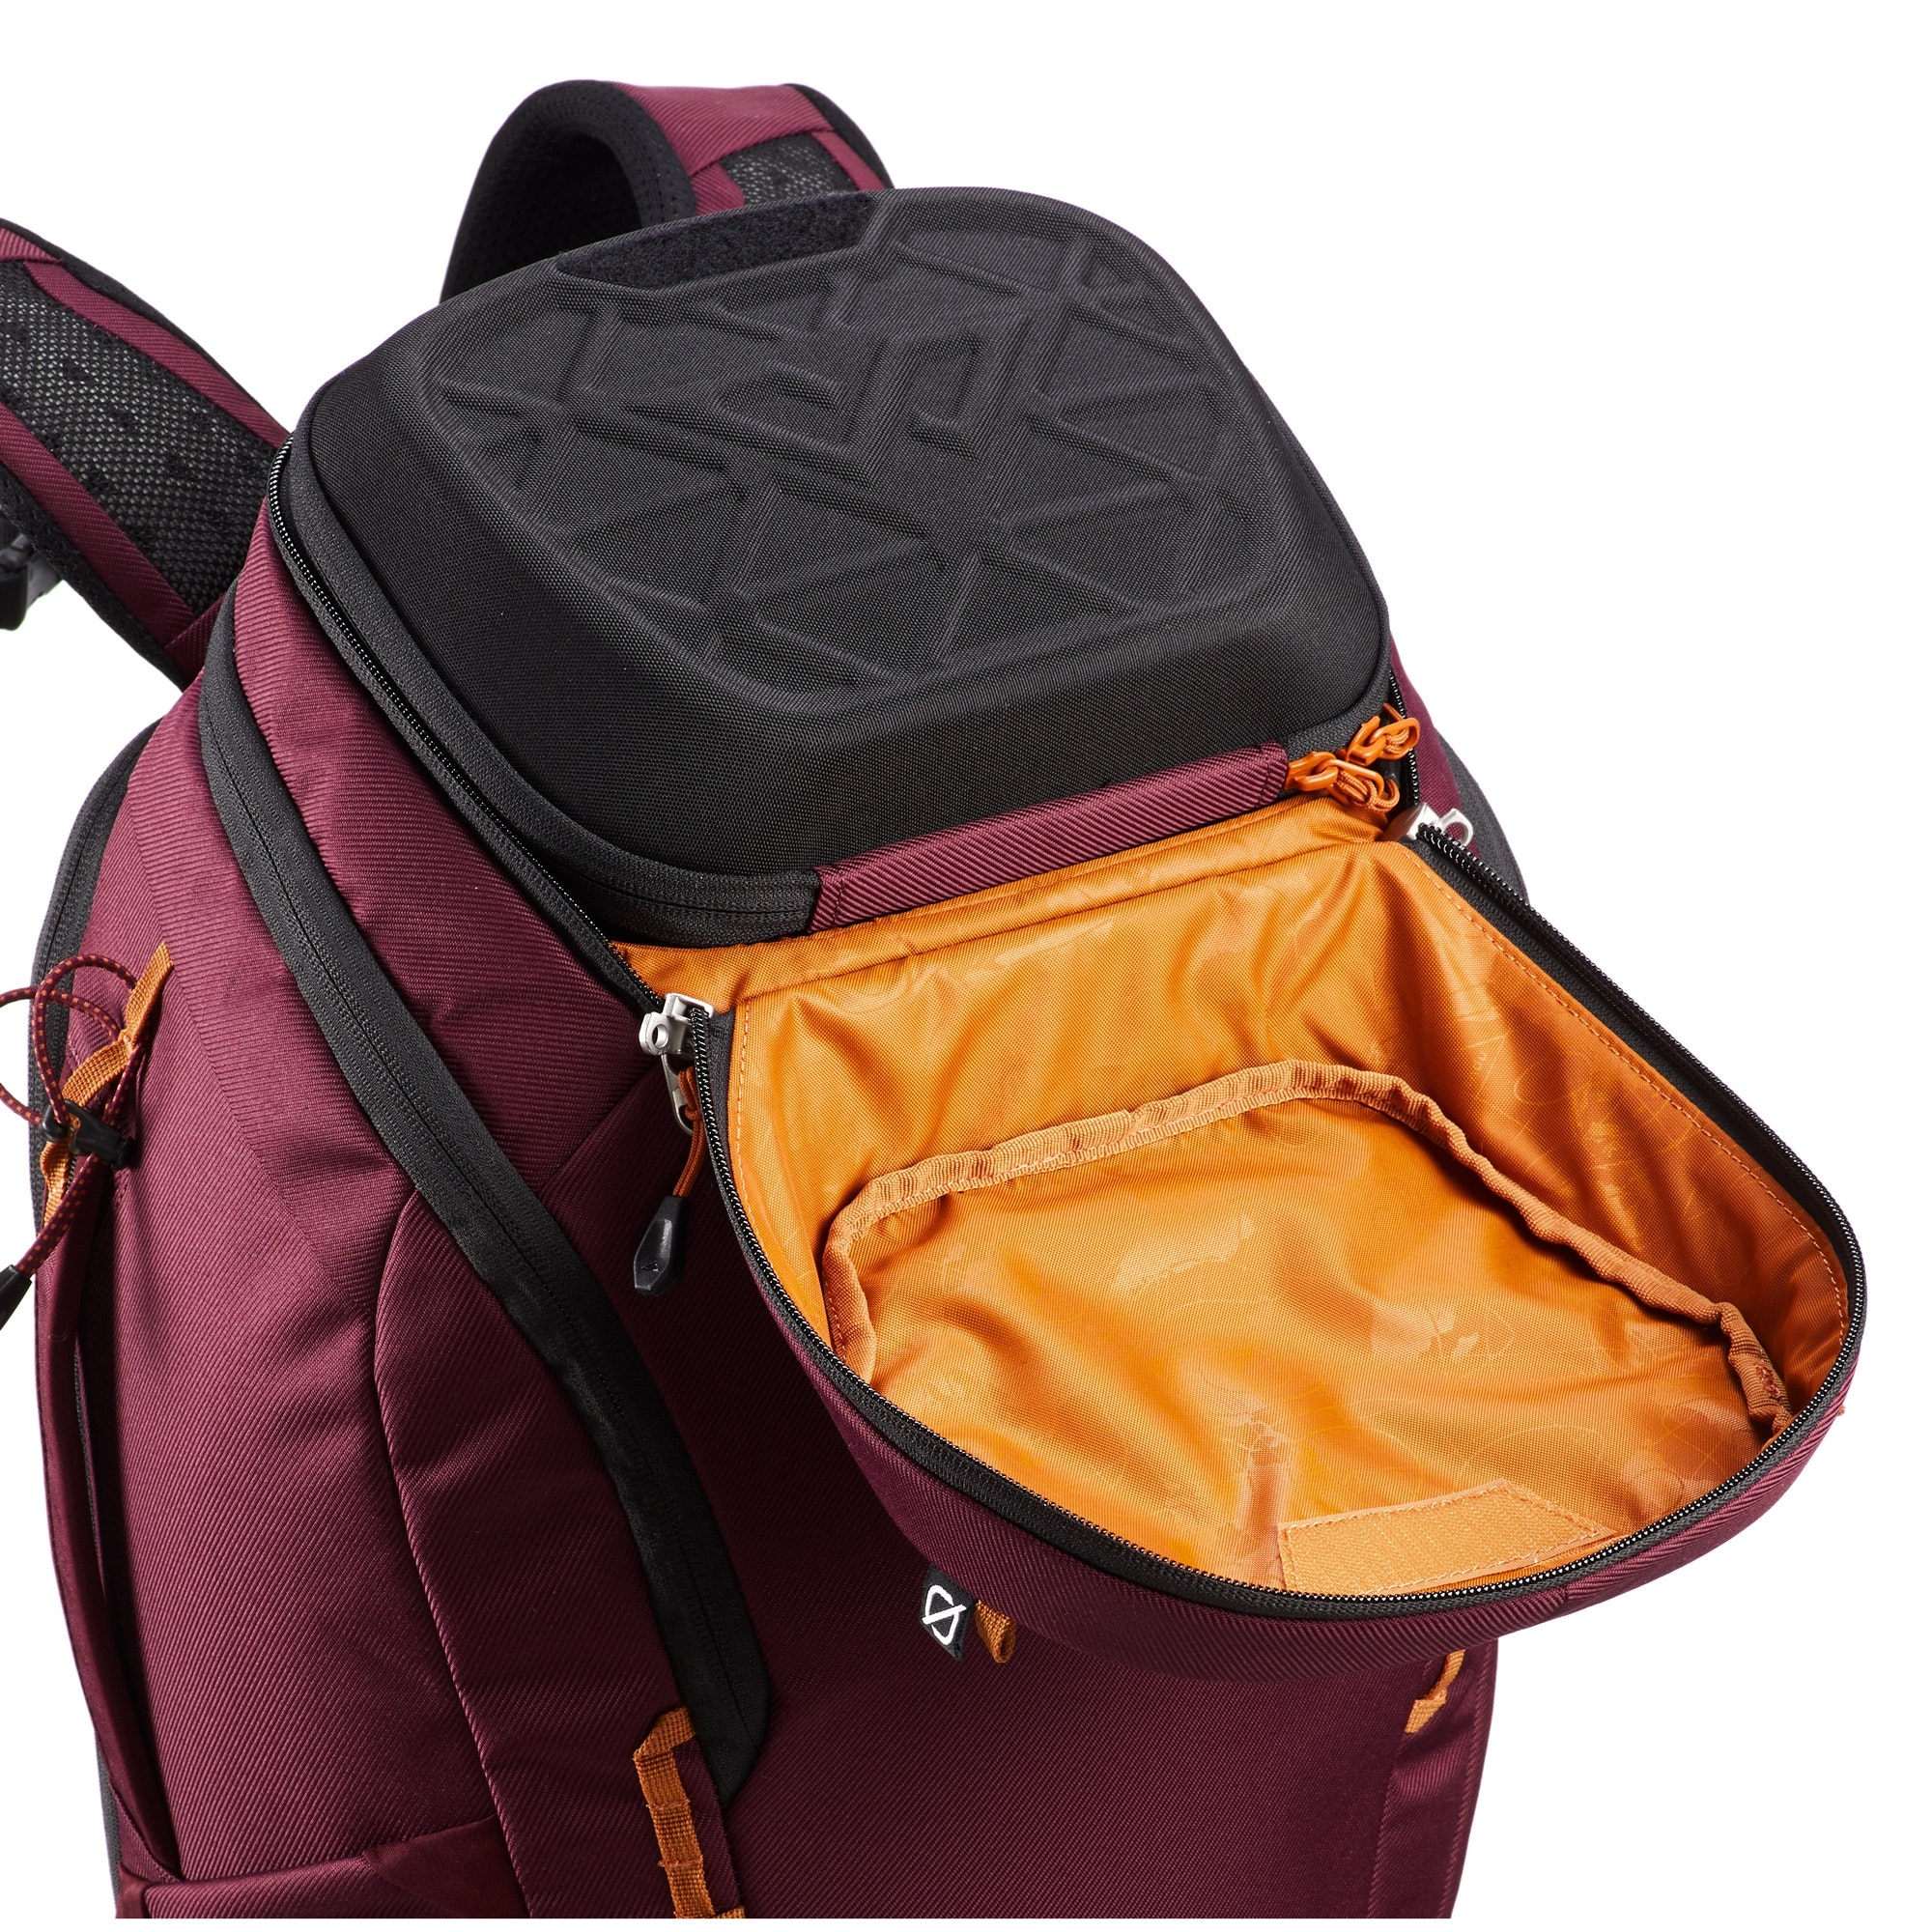 NEW-Kathmandu-Transfer-28L-Commuter-Bag-Laptop-Backpack-Rucksack-Travel-Pack-v3 thumbnail 29